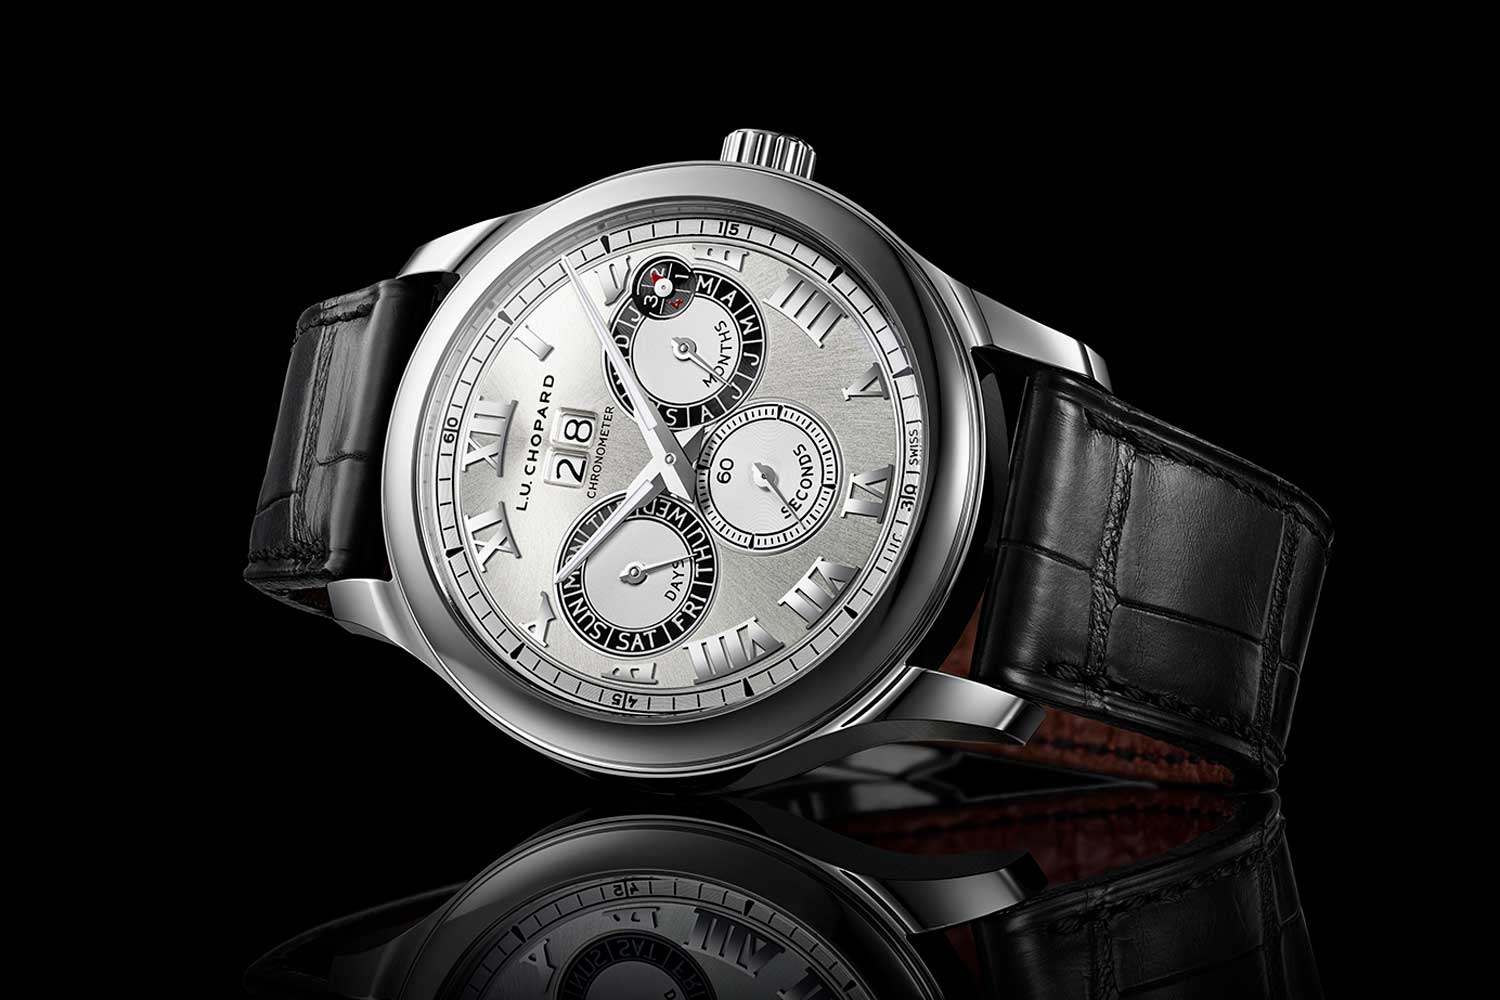 The Chopard L.U.C Perpetual Twin in steel, with a twin barrel design delivering a 65-hour power reserve.